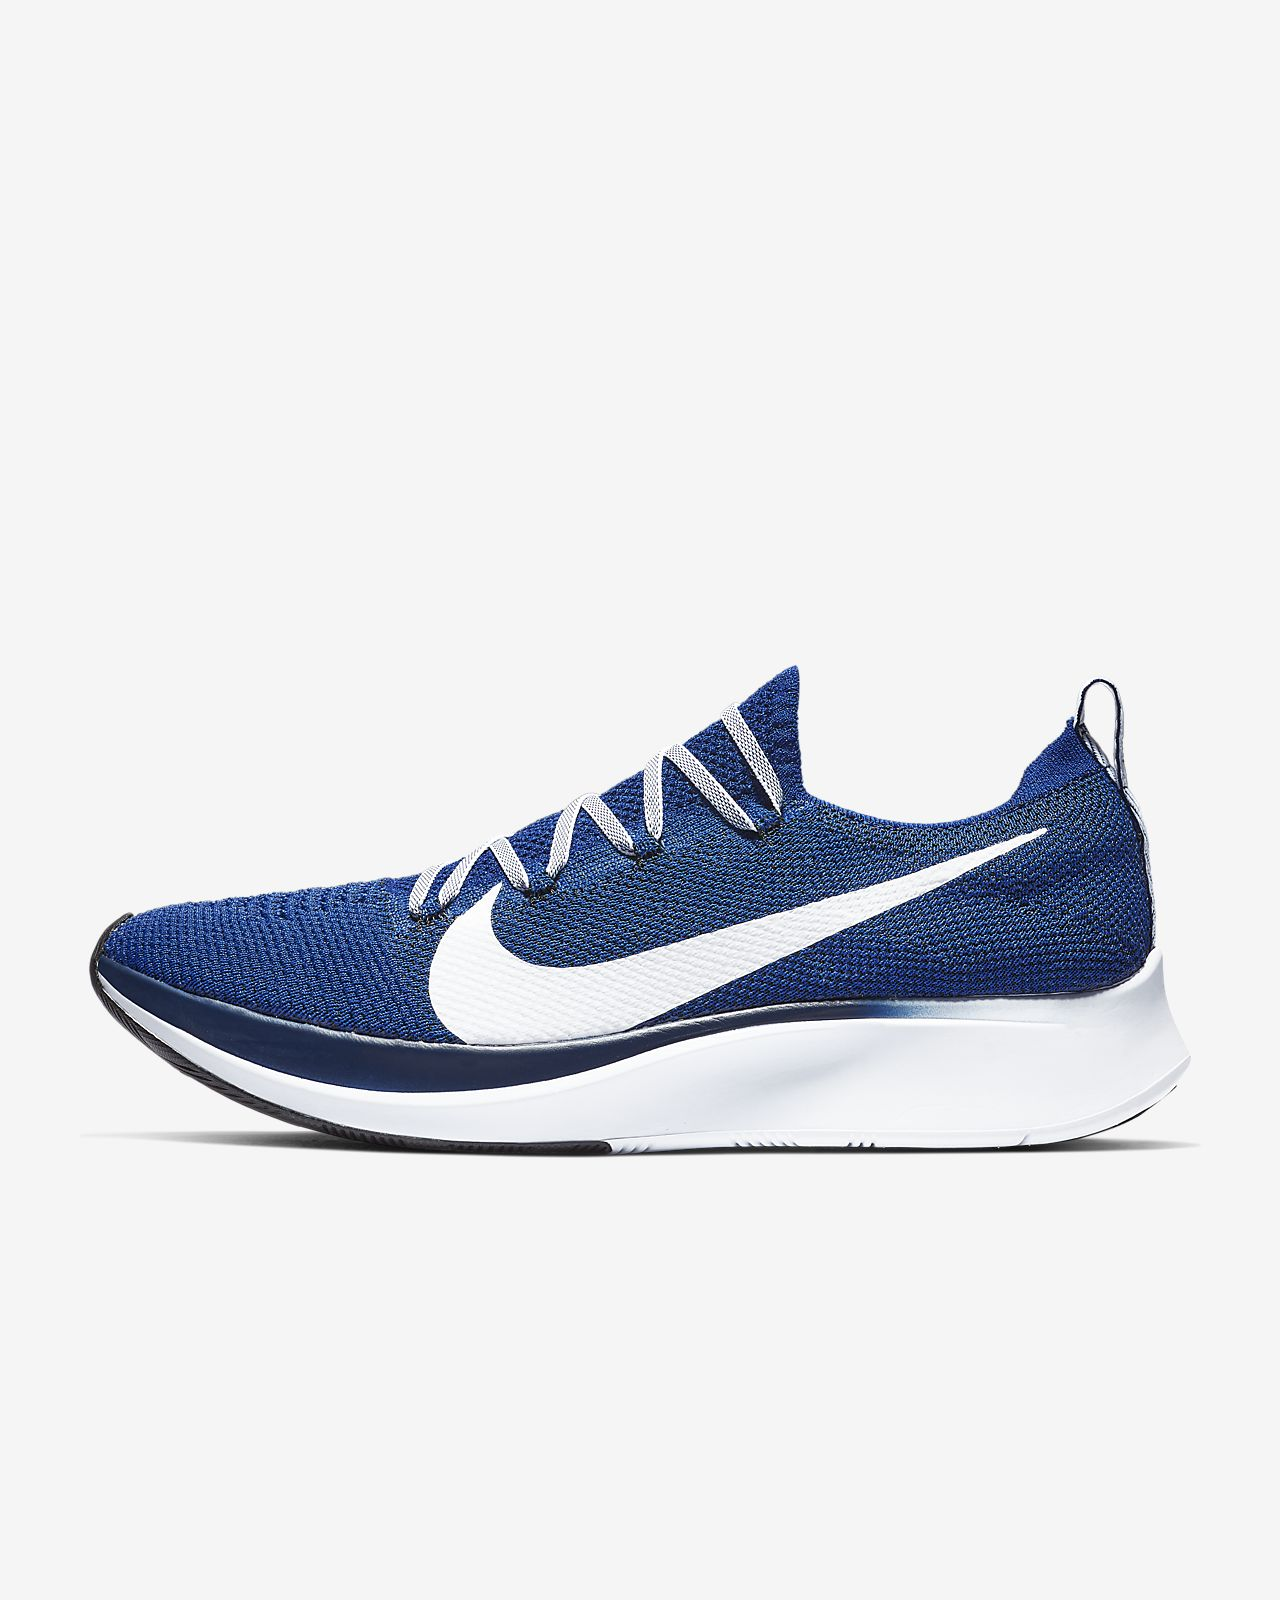 1c4155247412 Nike Zoom Fly Flyknit Men s Running Shoe. Nike.com ID